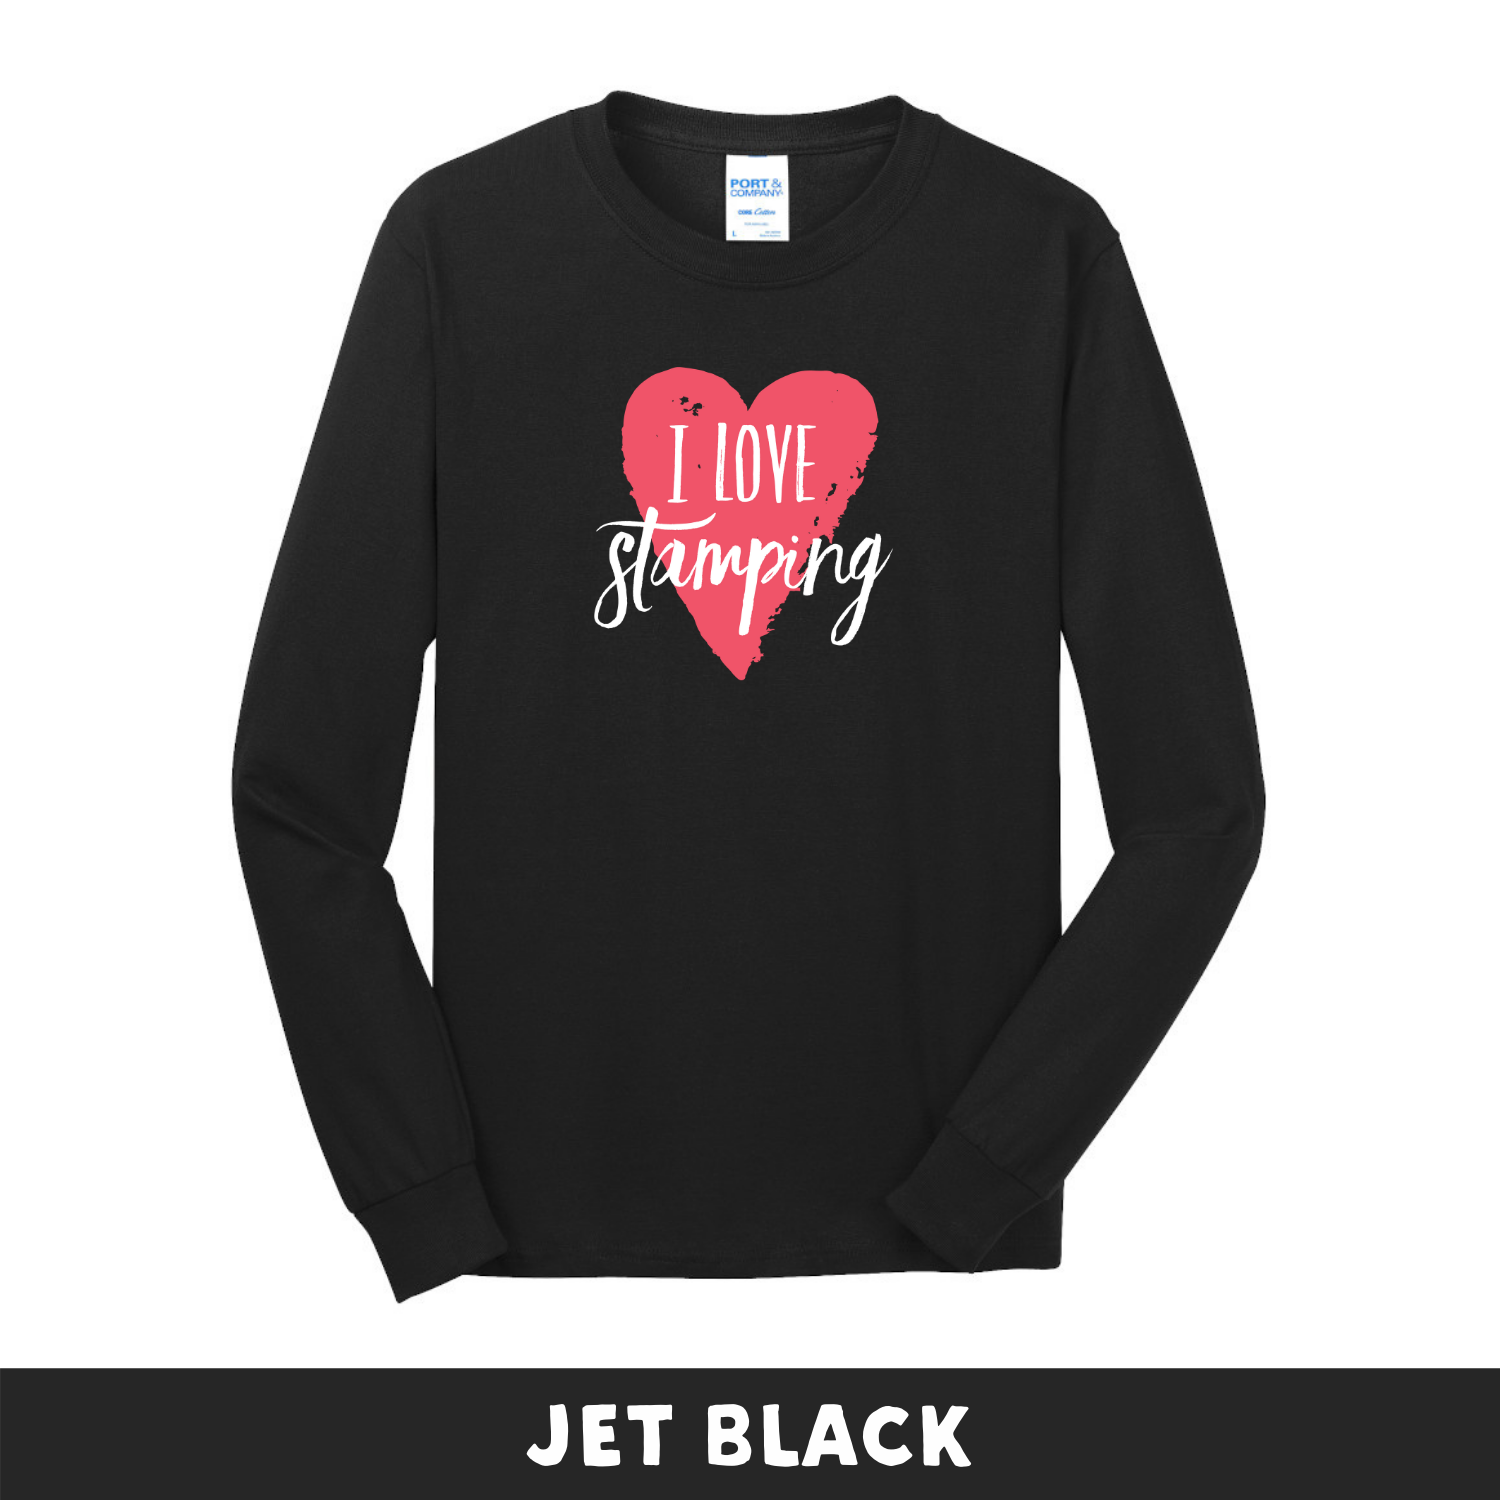 Jet Black - Long Sleeve Unisex T-Shirt - I Love Stamping